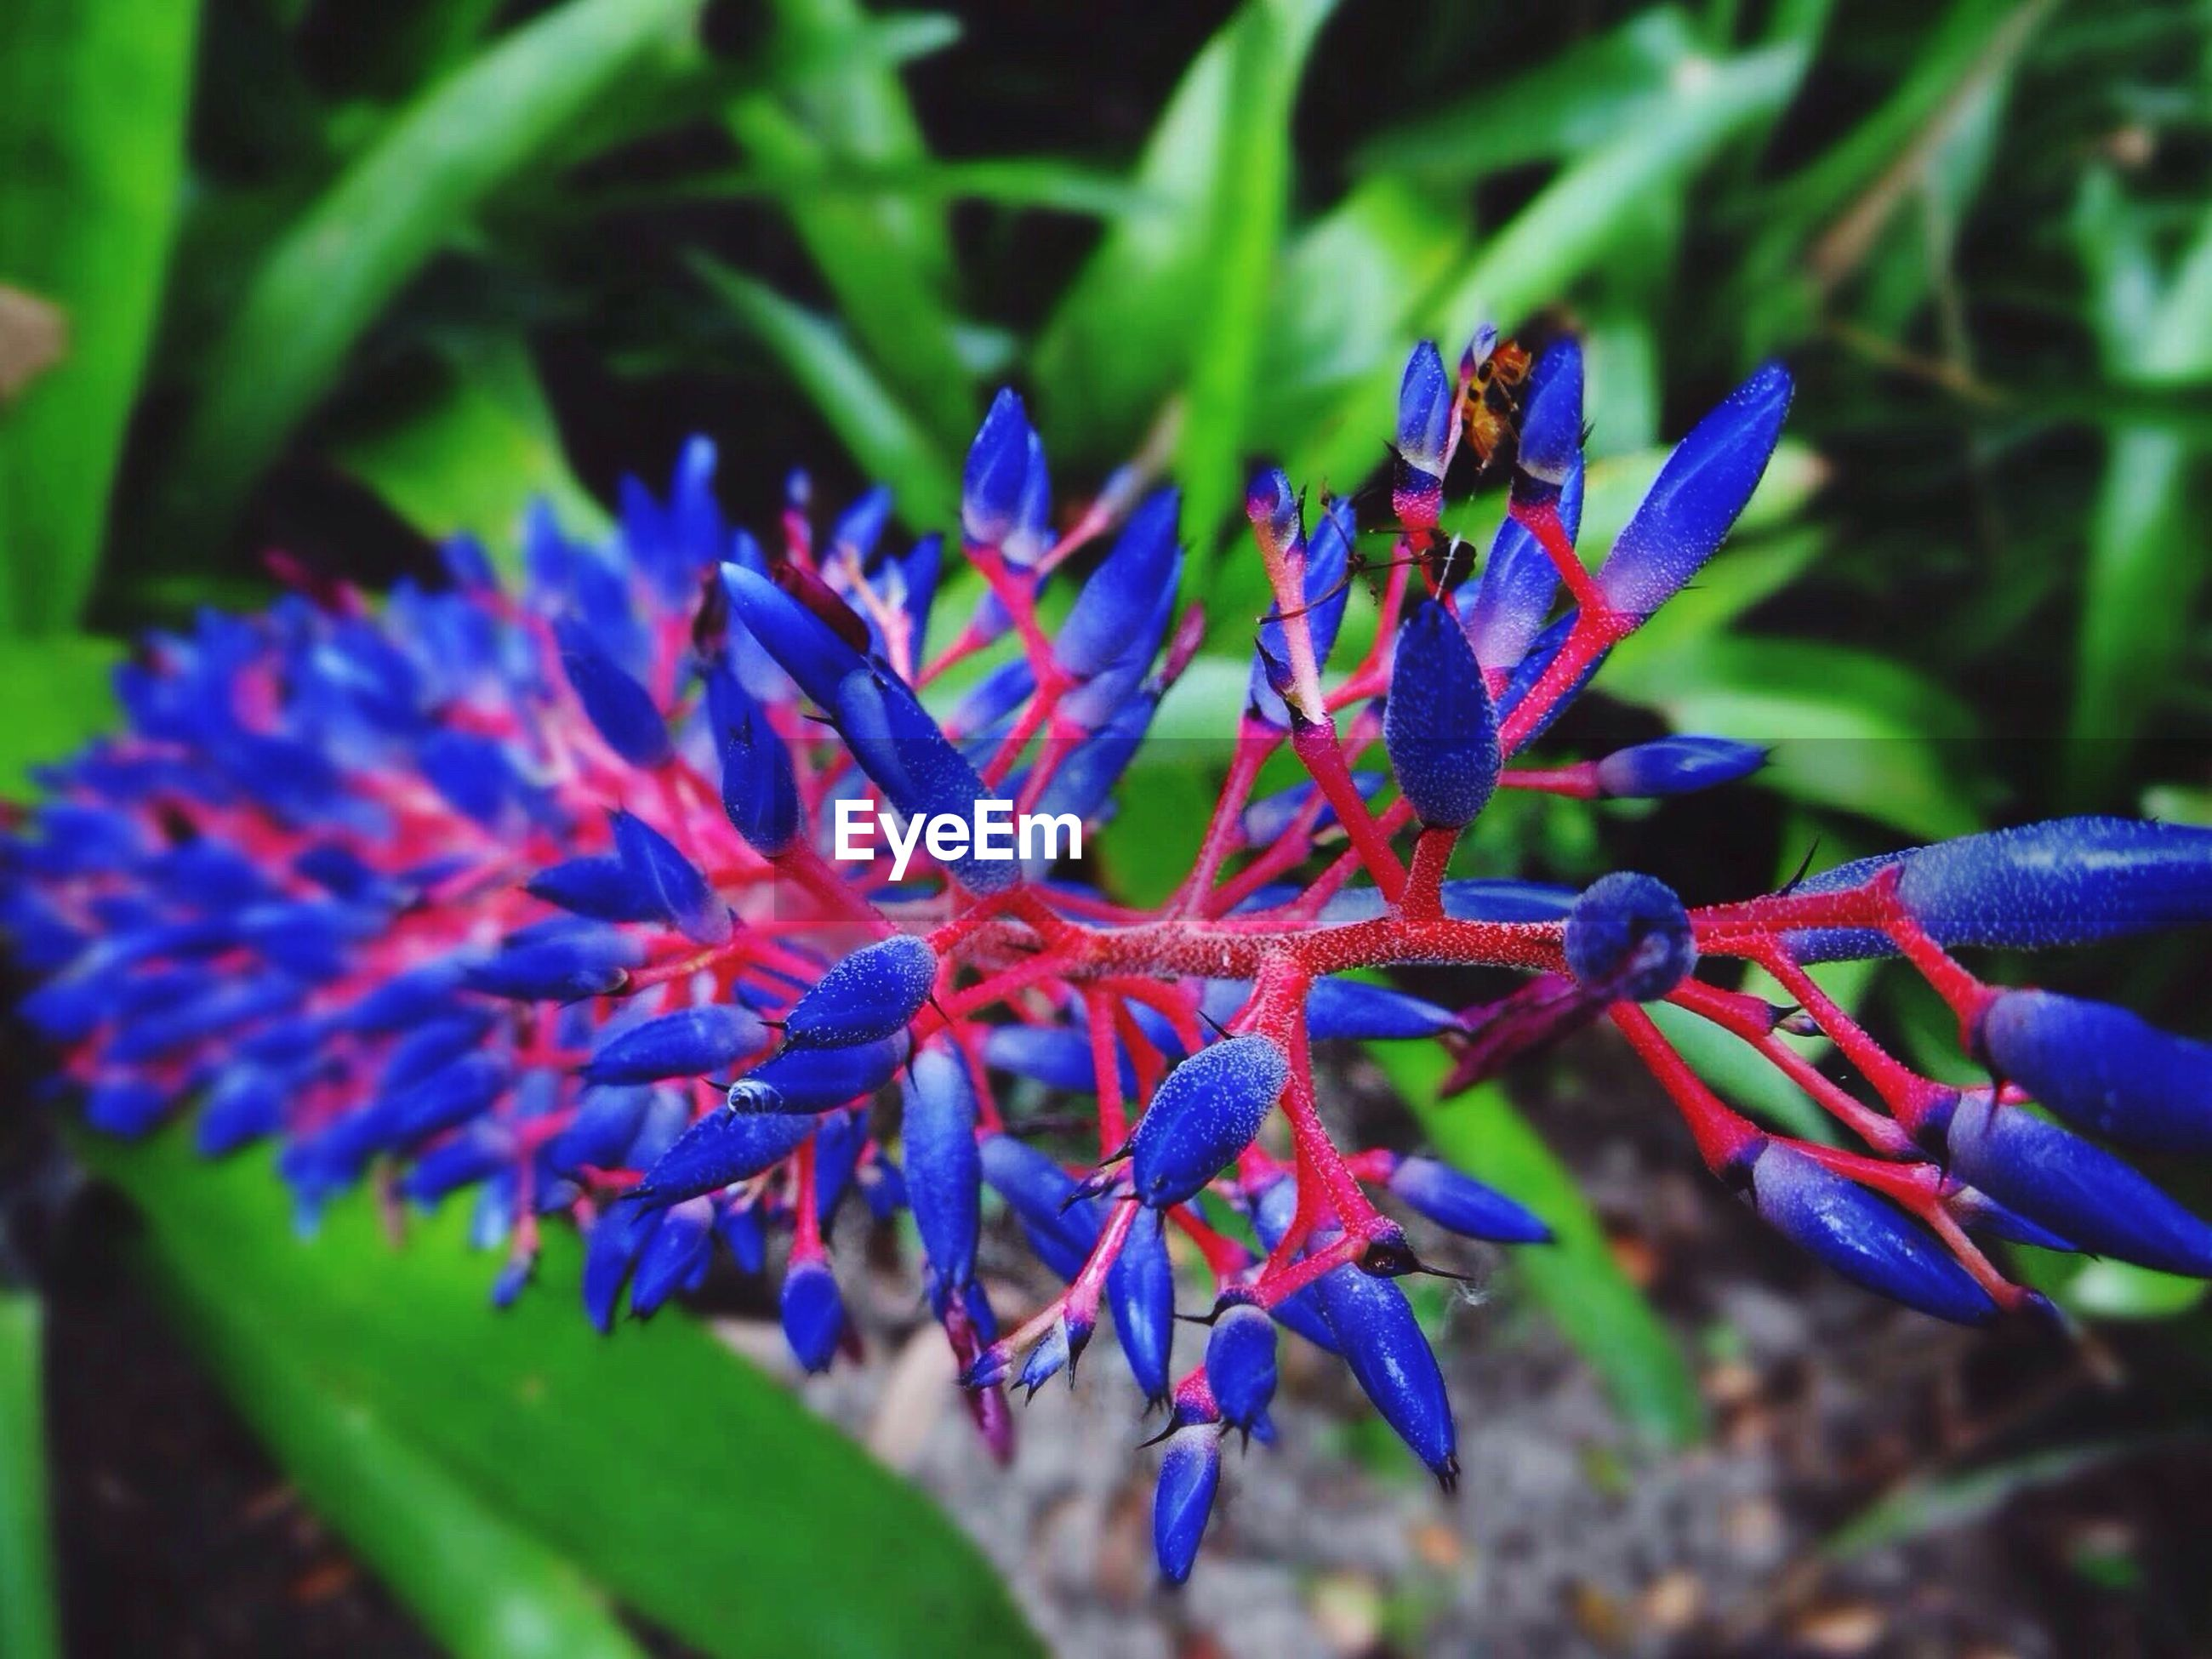 flower, purple, freshness, petal, growth, fragility, close-up, focus on foreground, beauty in nature, flower head, plant, nature, blooming, blue, leaf, selective focus, park - man made space, day, outdoors, in bloom